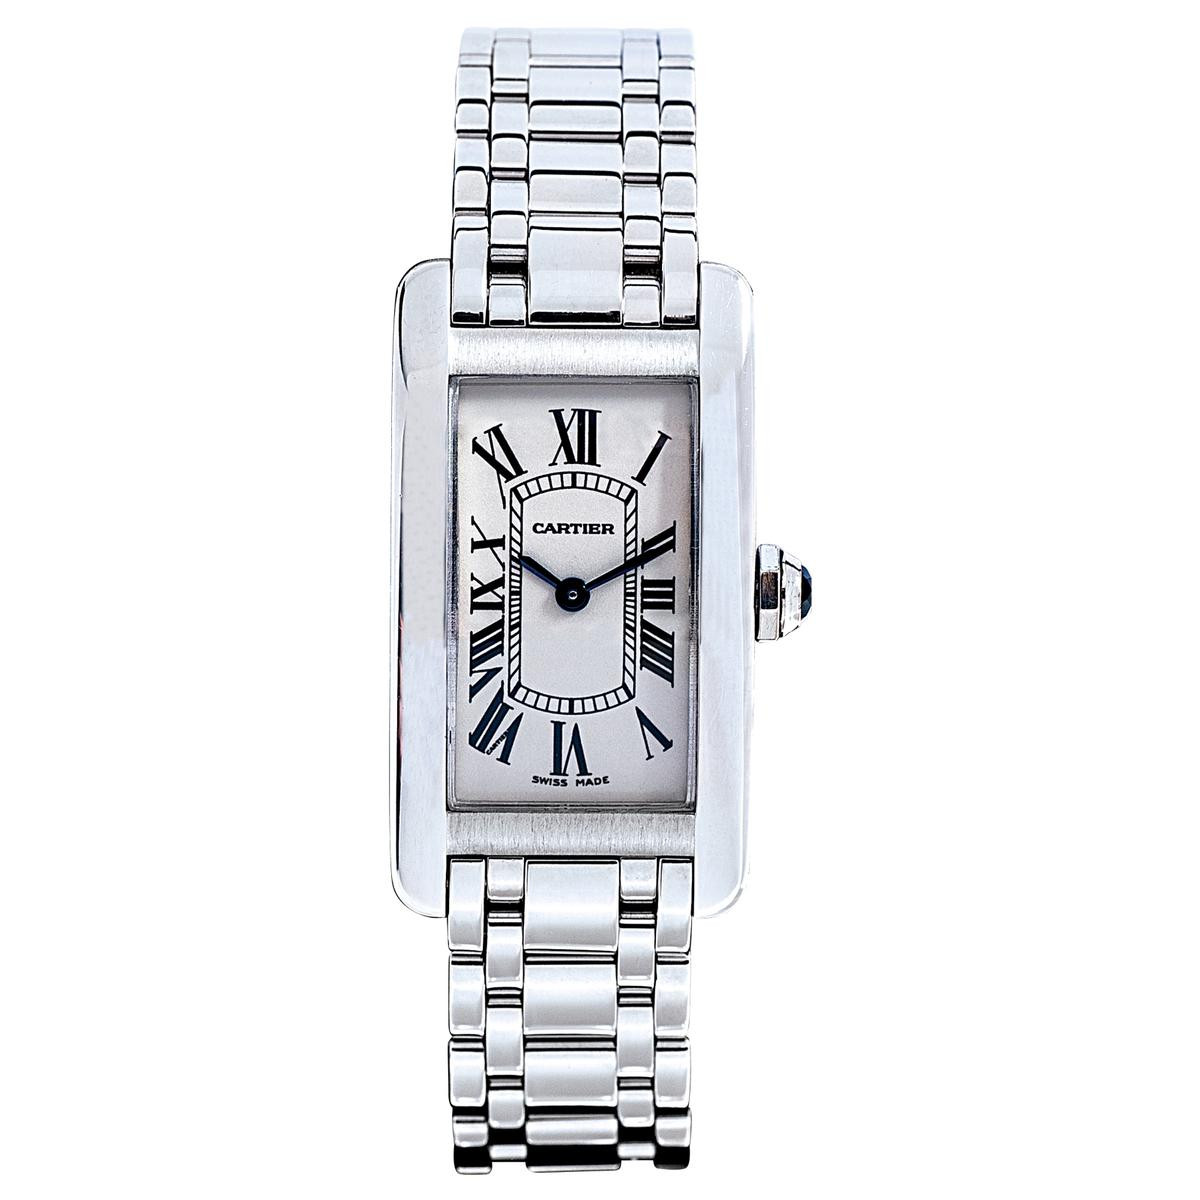 Preowned Cartier Tank Americaine